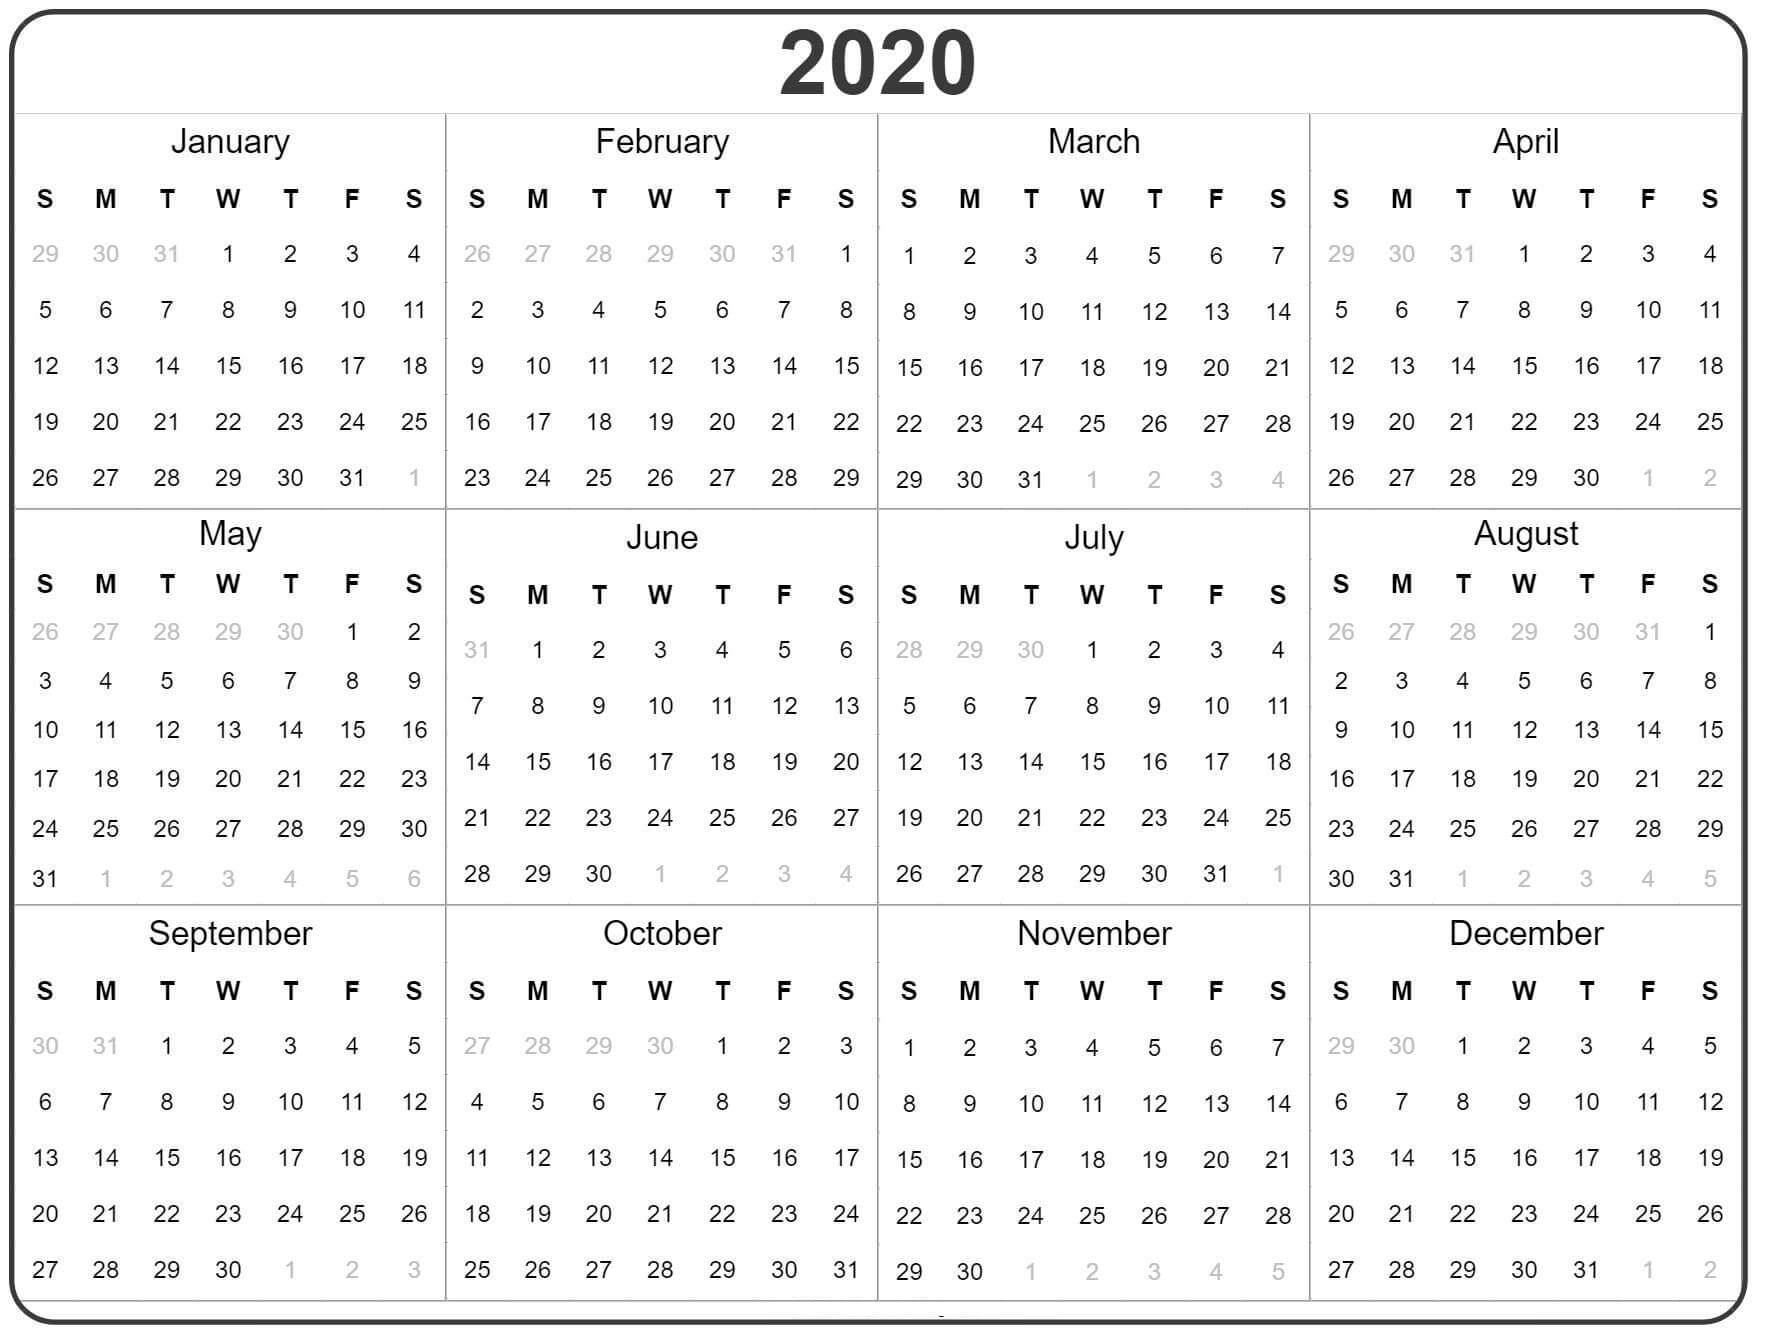 Free Yearly Calendar 2020 With Notes - 2019 Calendars For intended for 2020 Year At A Glance Calendar Free